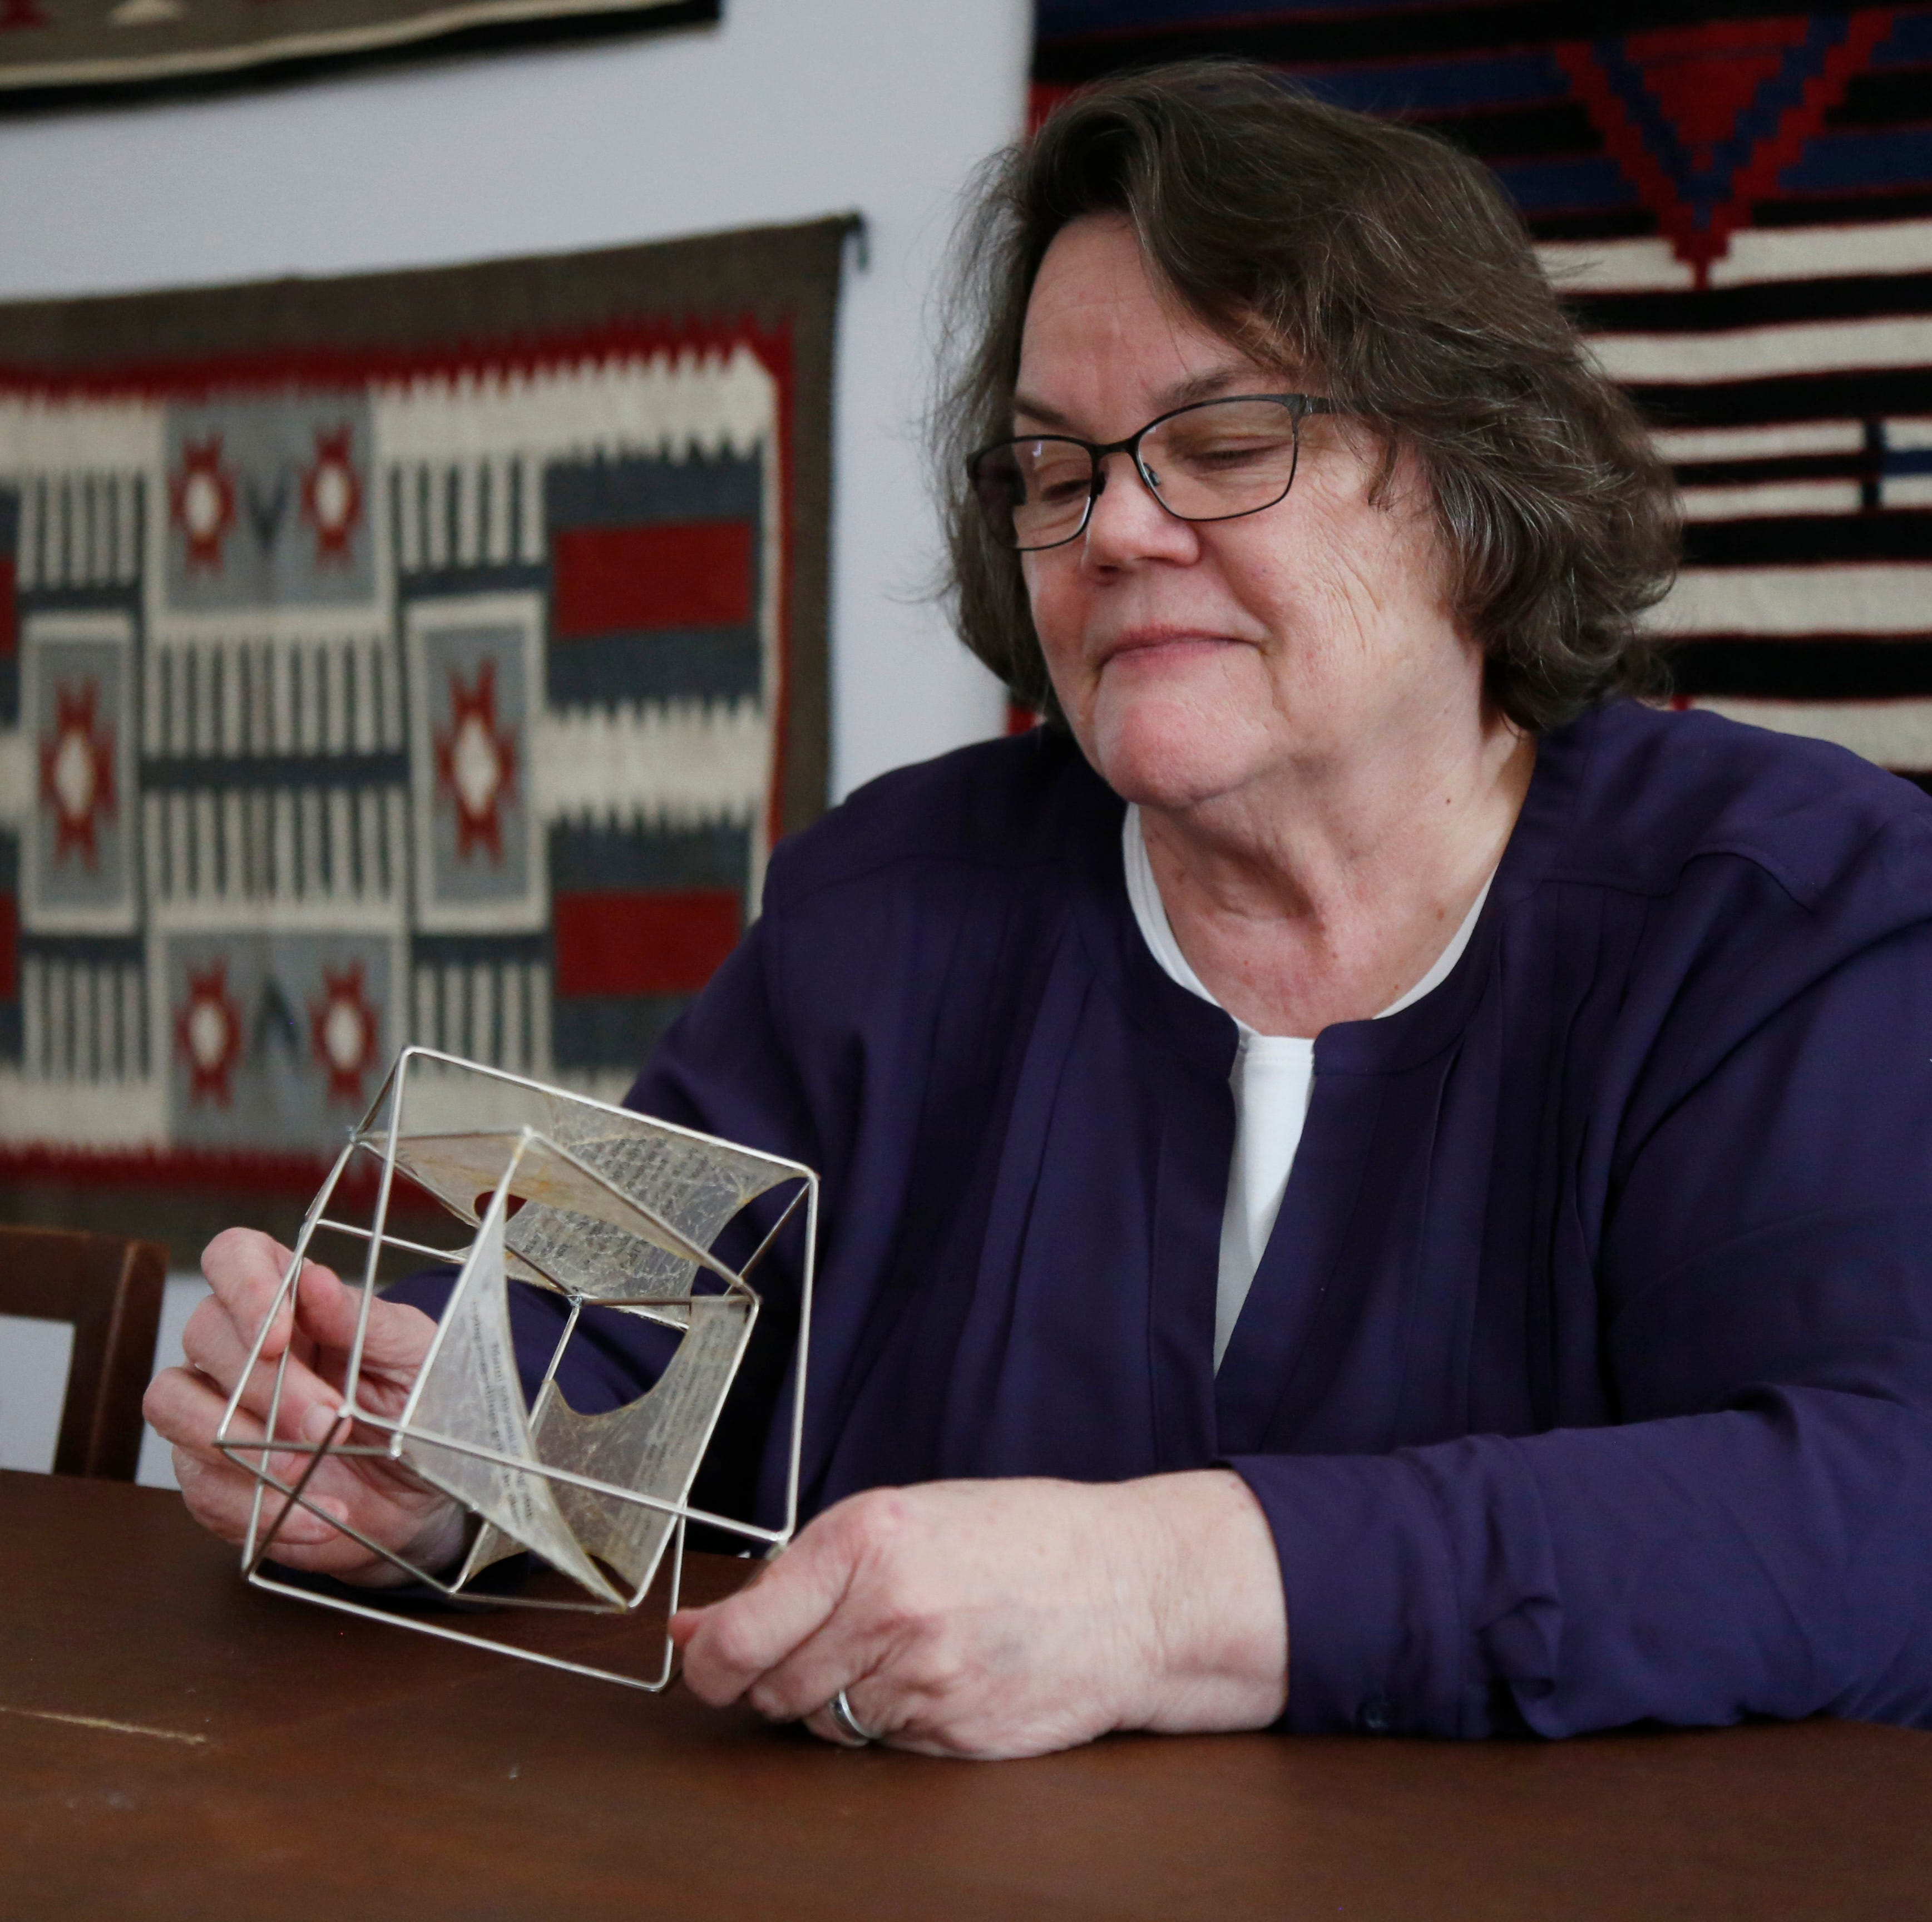 Book artist uses craft to help inmates, others express, heal themselves through words